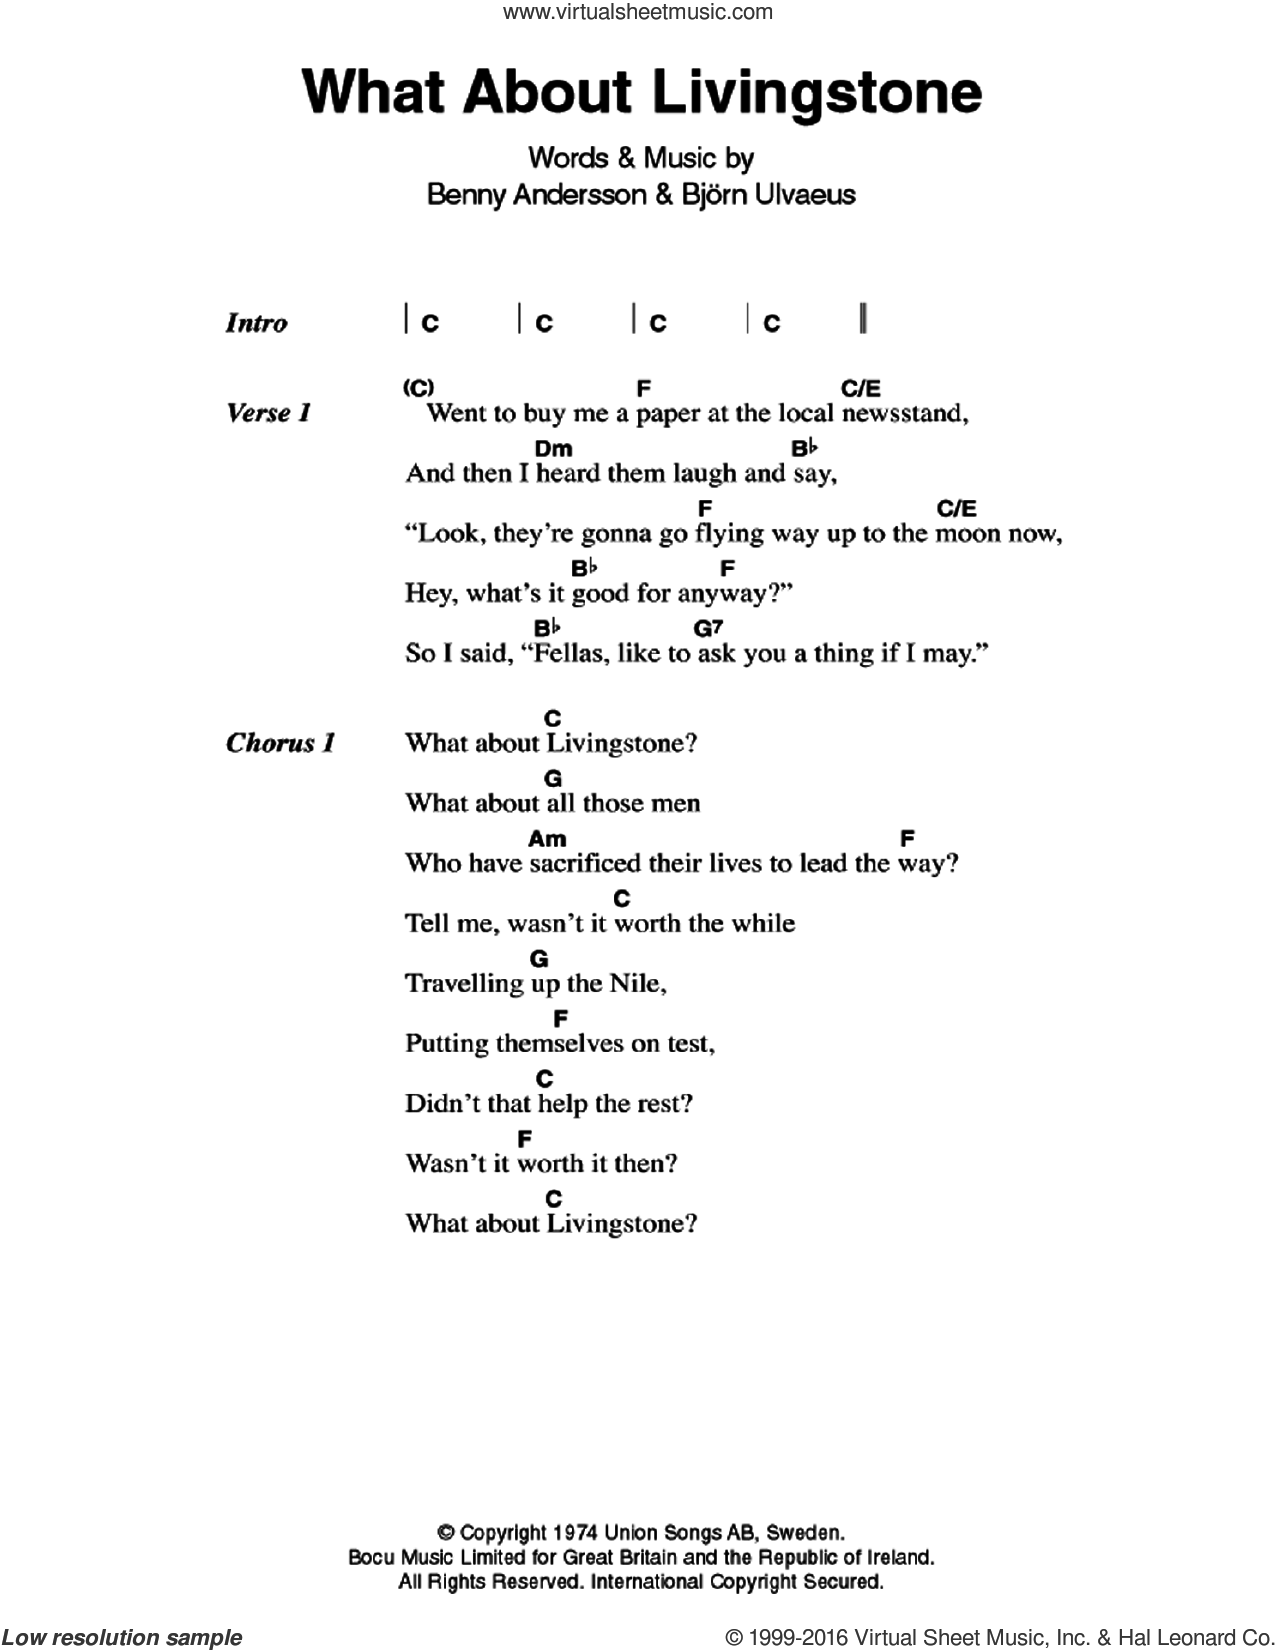 What About Livingstone sheet music for guitar (chords) by Bjorn Ulvaeus, ABBA and Benny Andersson. Score Image Preview.